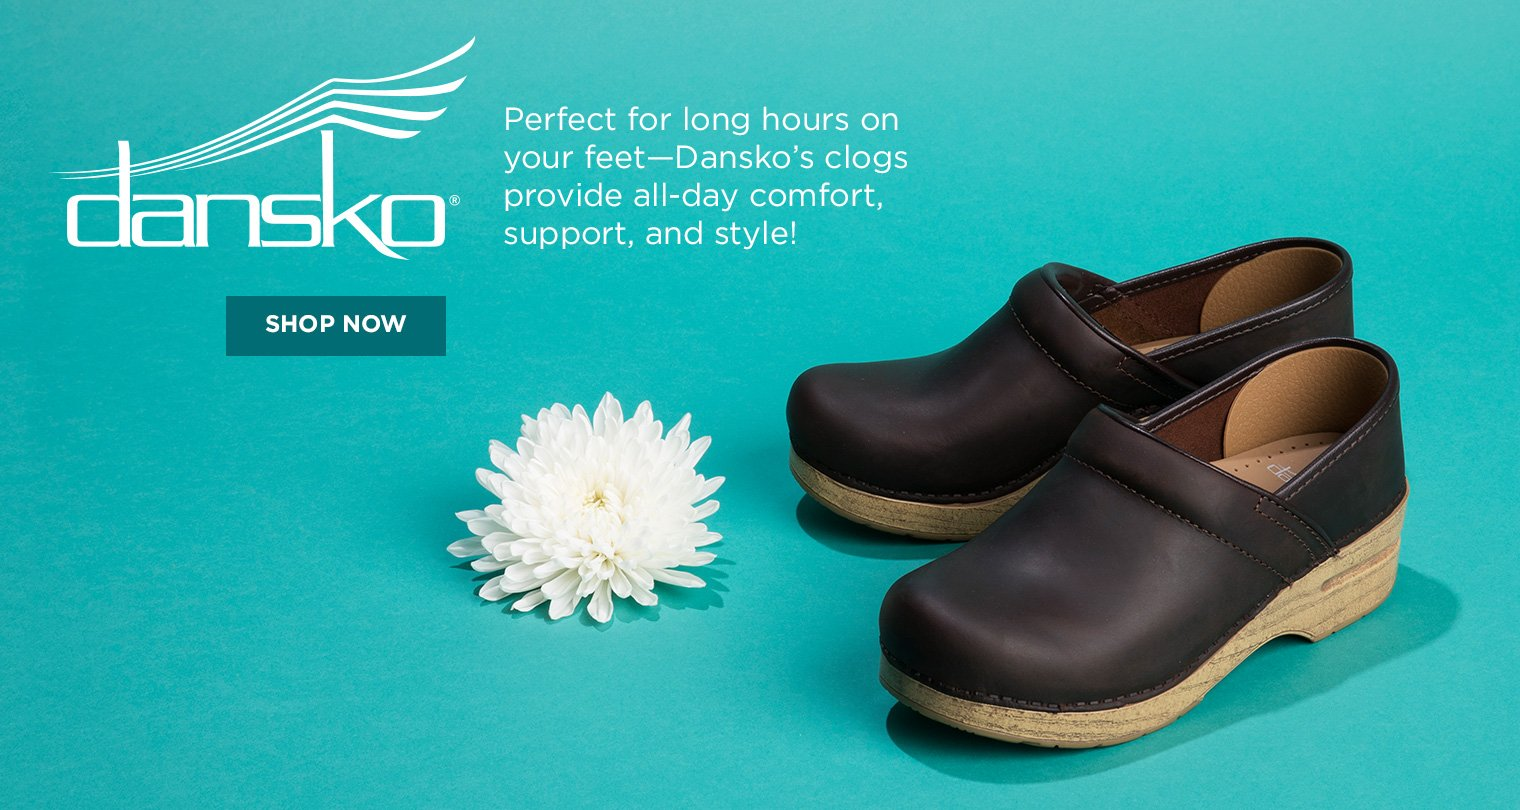 32bd1f8195 Perfect for long hours on your feet, Dansko's clogs provide all-day